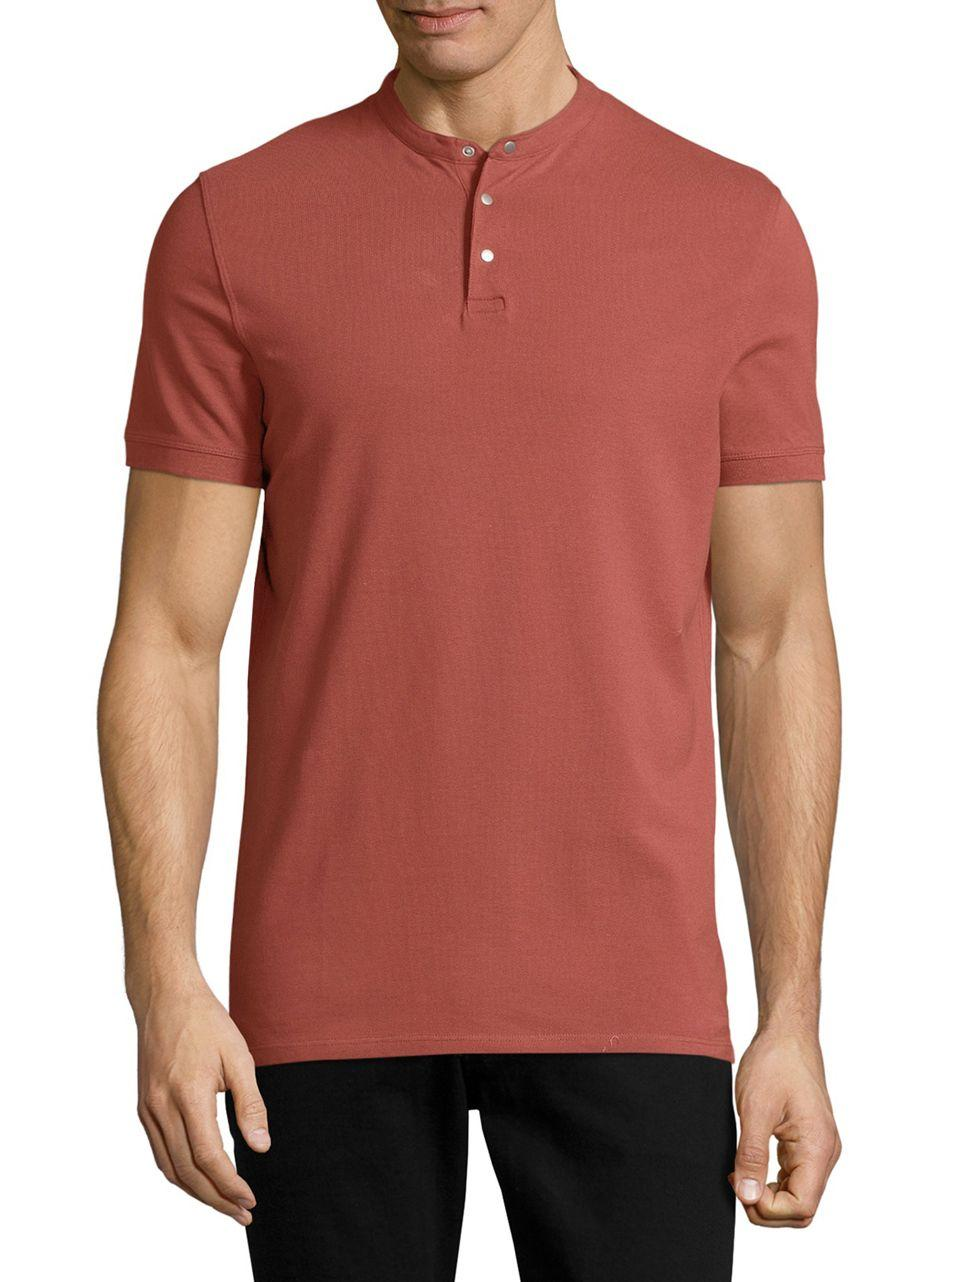 Selected Collarless Cotton Polo Shirt In Red For Men Lyst